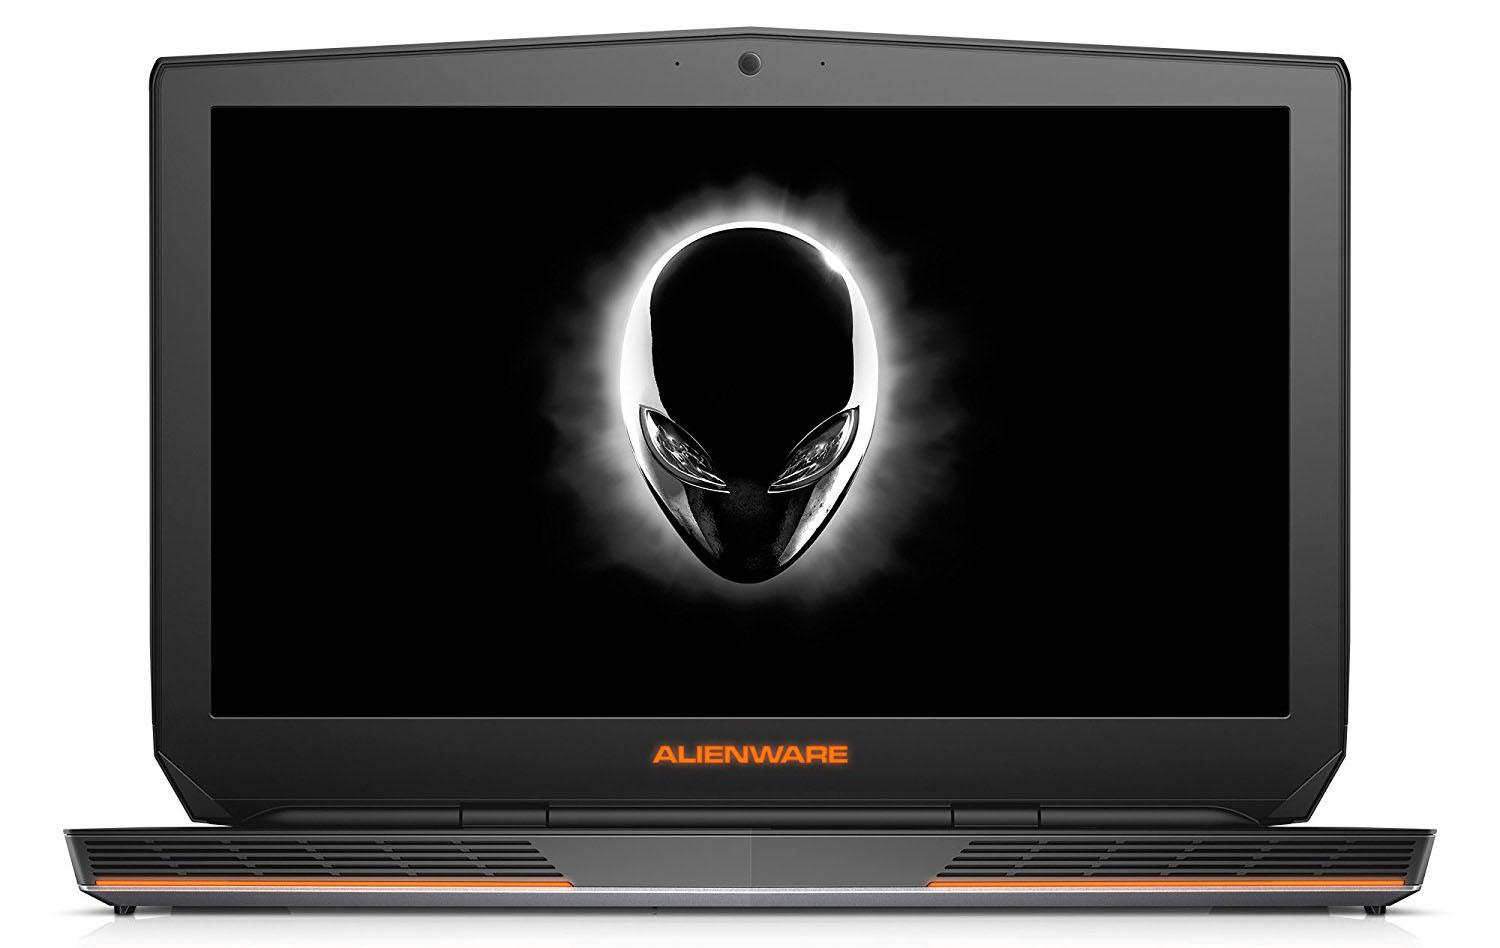 Driver for Dell Alienware 17 R3 nVIDIA GeForce GTX Graphics